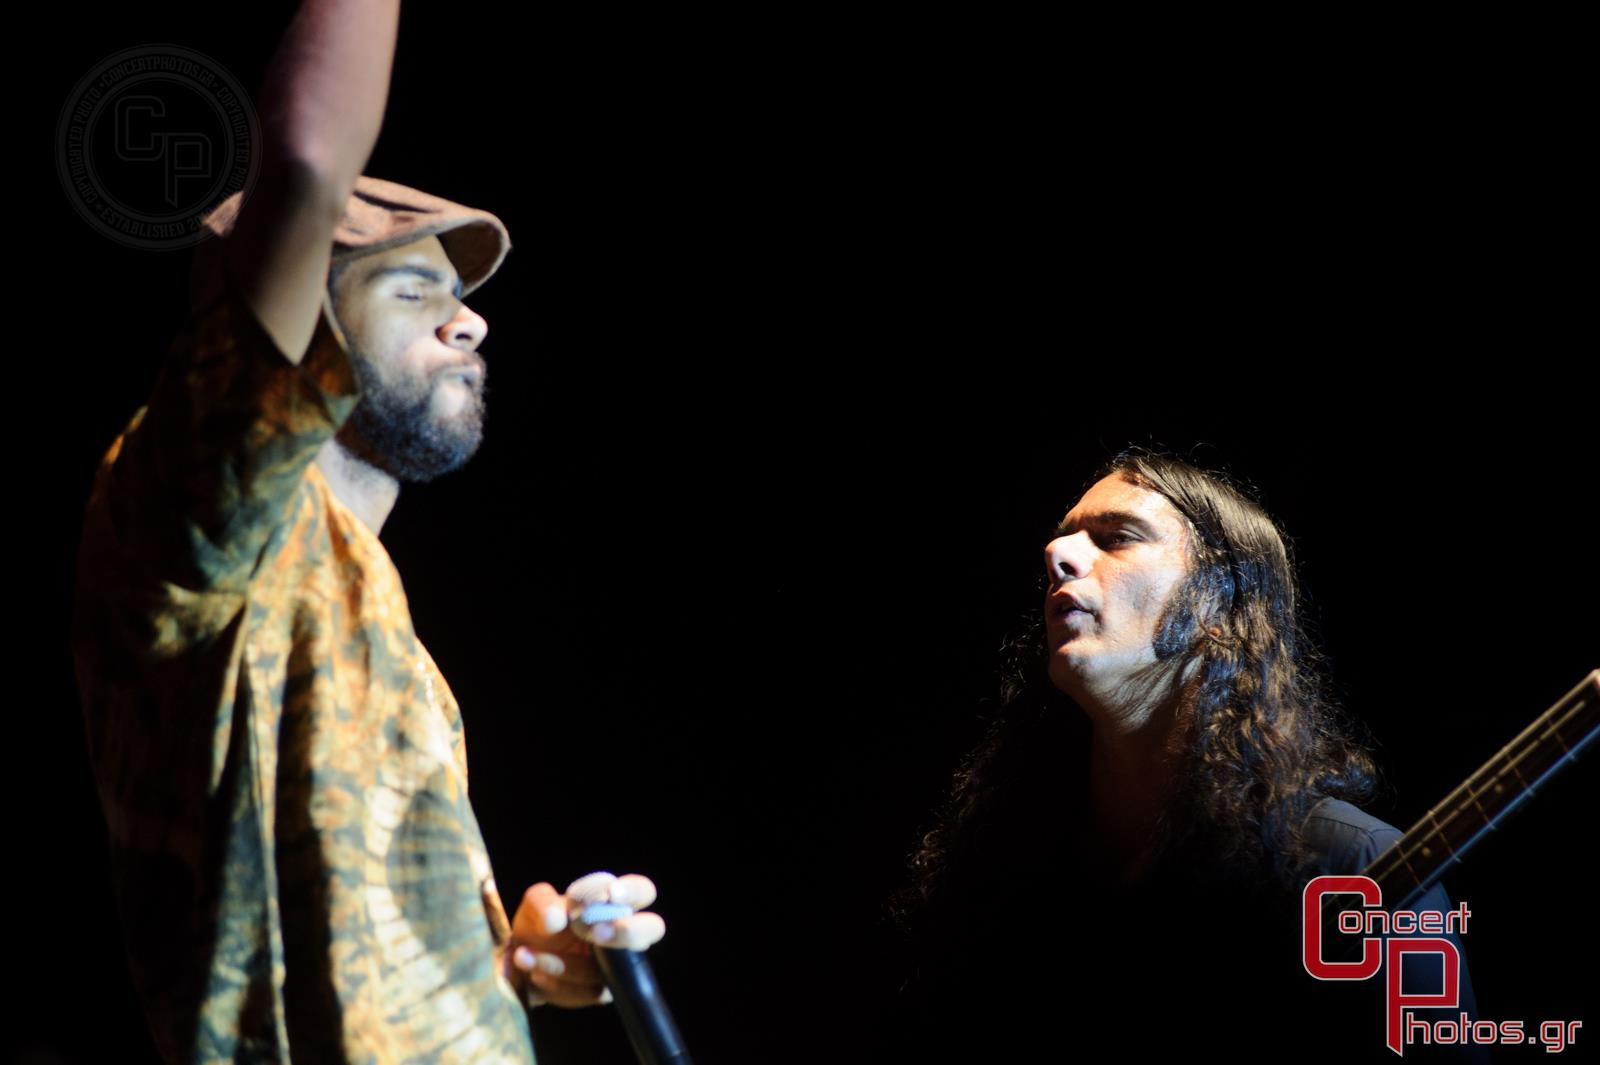 Thievery Corporation Imam Baildi Boogie Belgique Penny And The Swingin' Cats-Thievery Corporation Imam Baildi Boogie Belgique Penny And The Swingin' Cats photographer:  - concertphotos_20140617_23_29_42